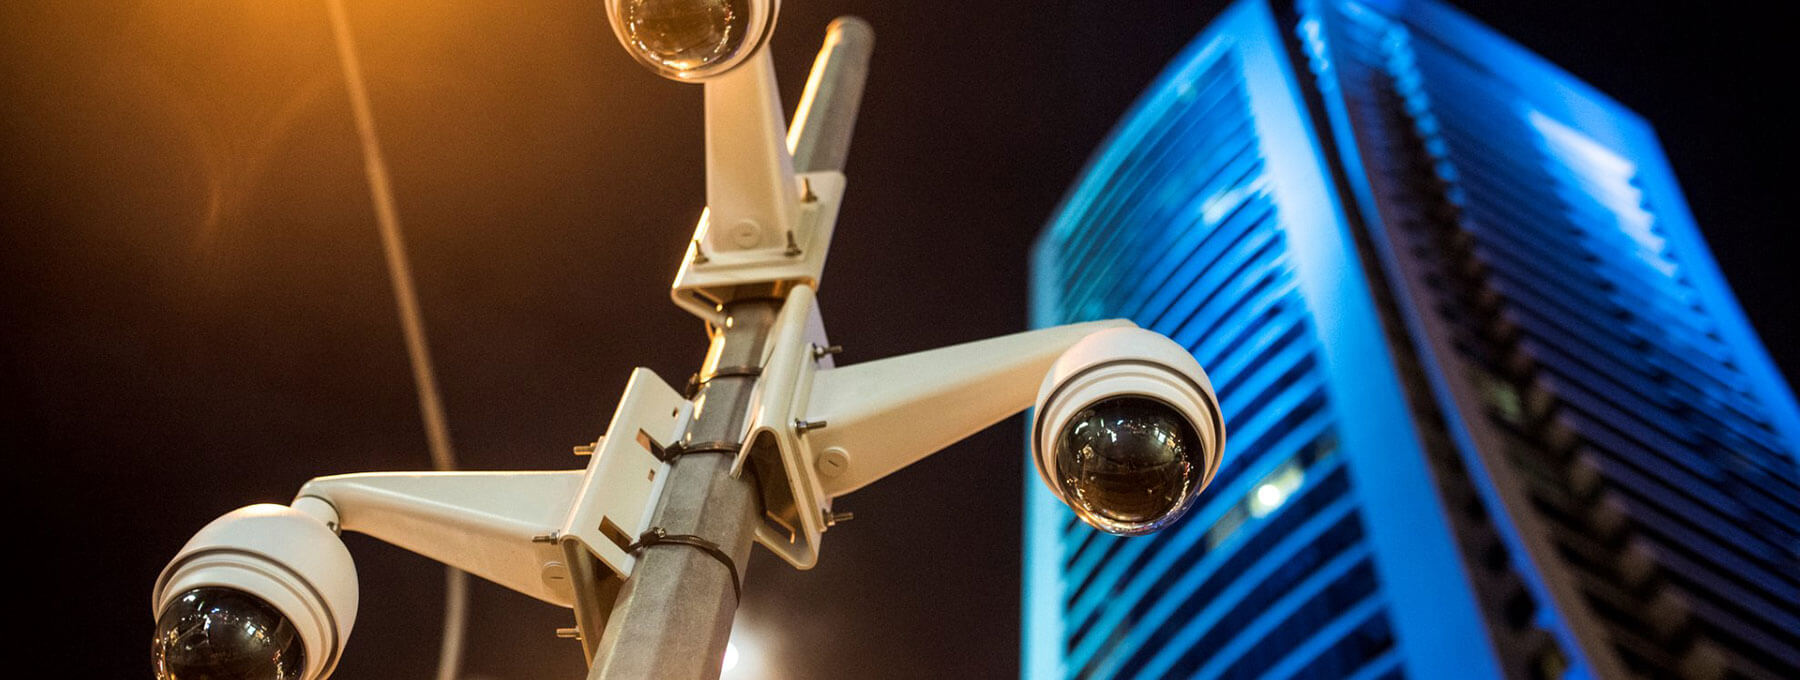 Surveillance and Security Systems